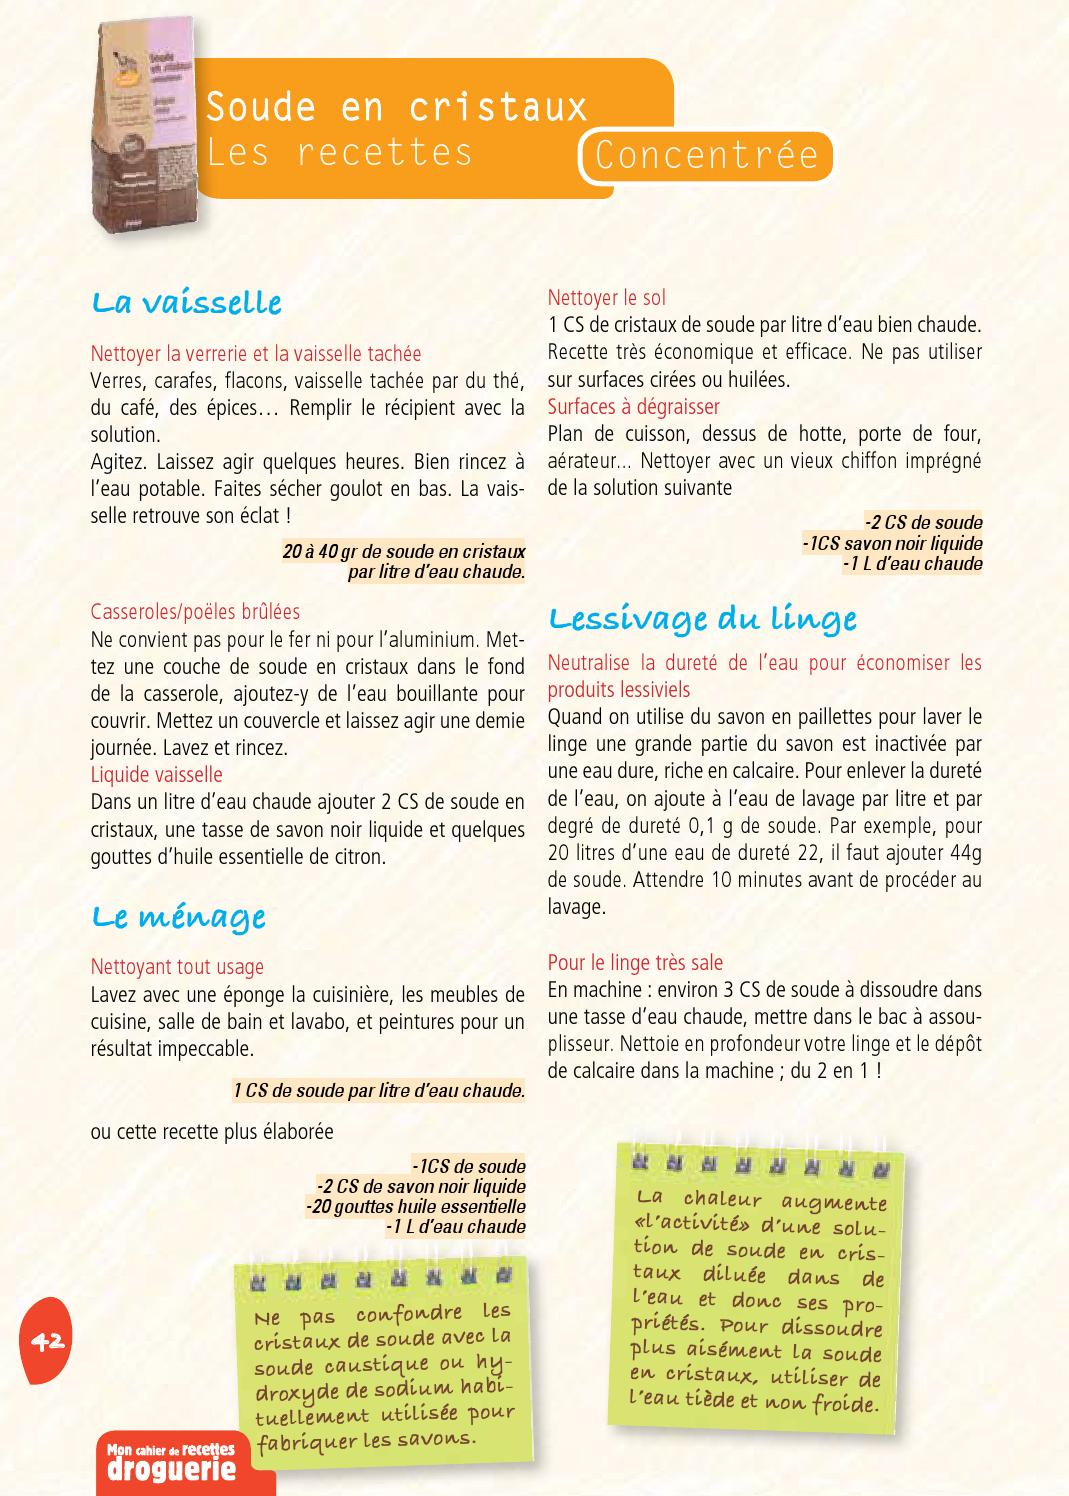 Cristaux De Soude Sol brochure droguerie version 2014ecodis - issuu